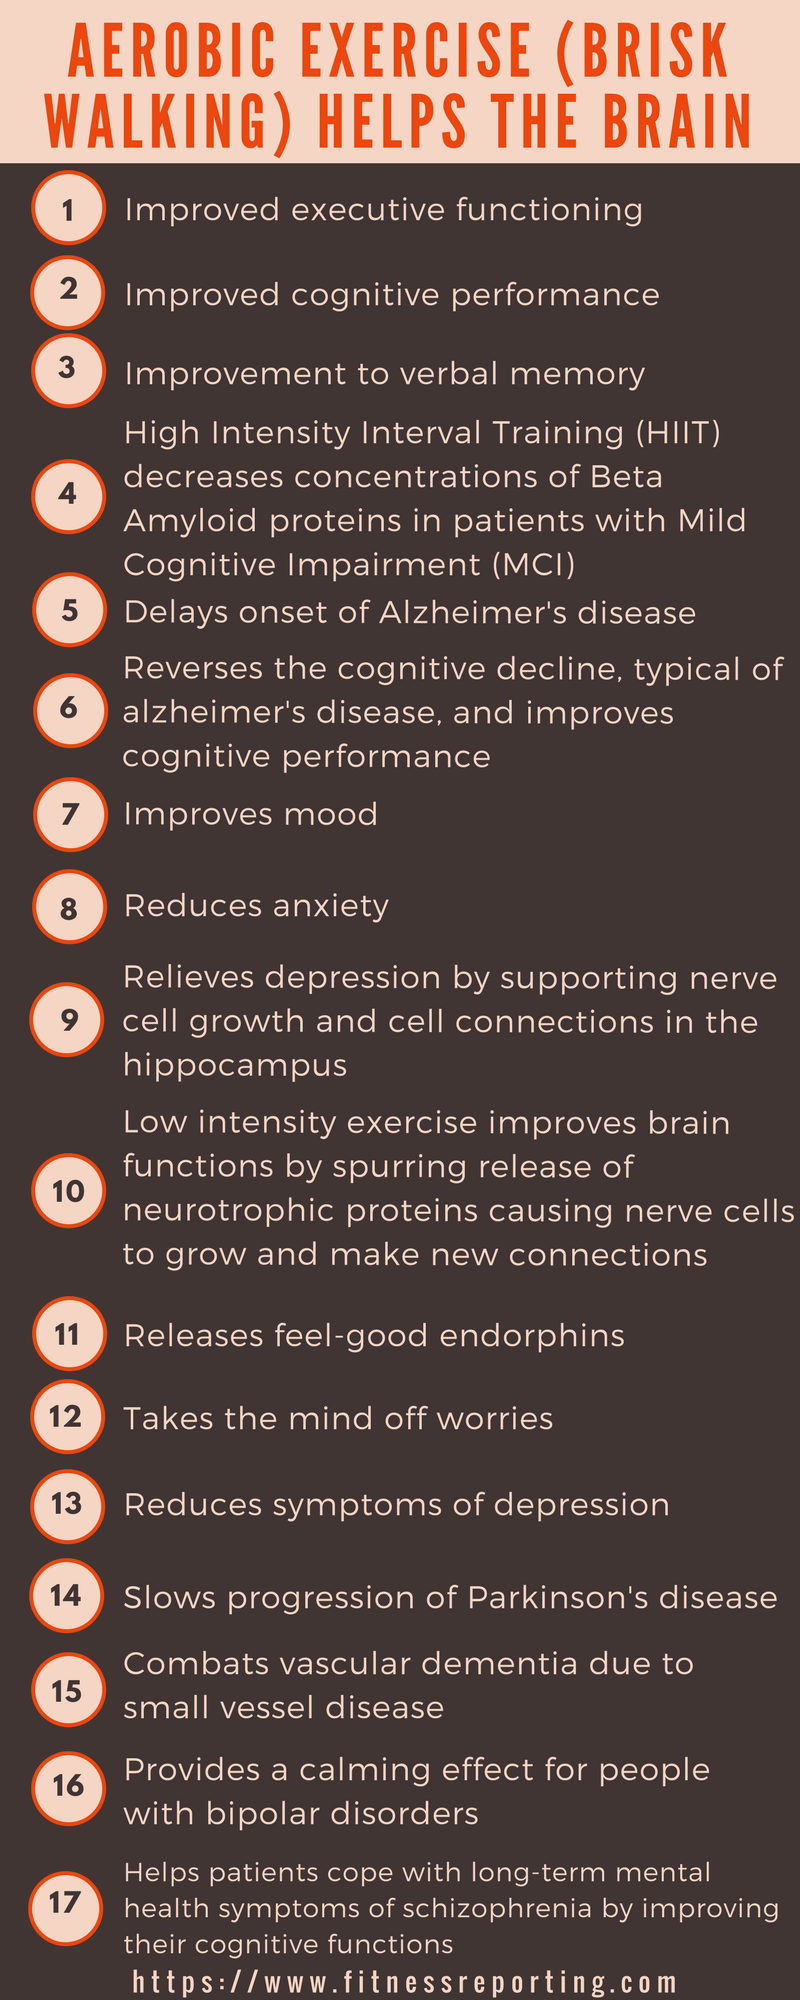 ways aerobic or cardio workouts help the brain